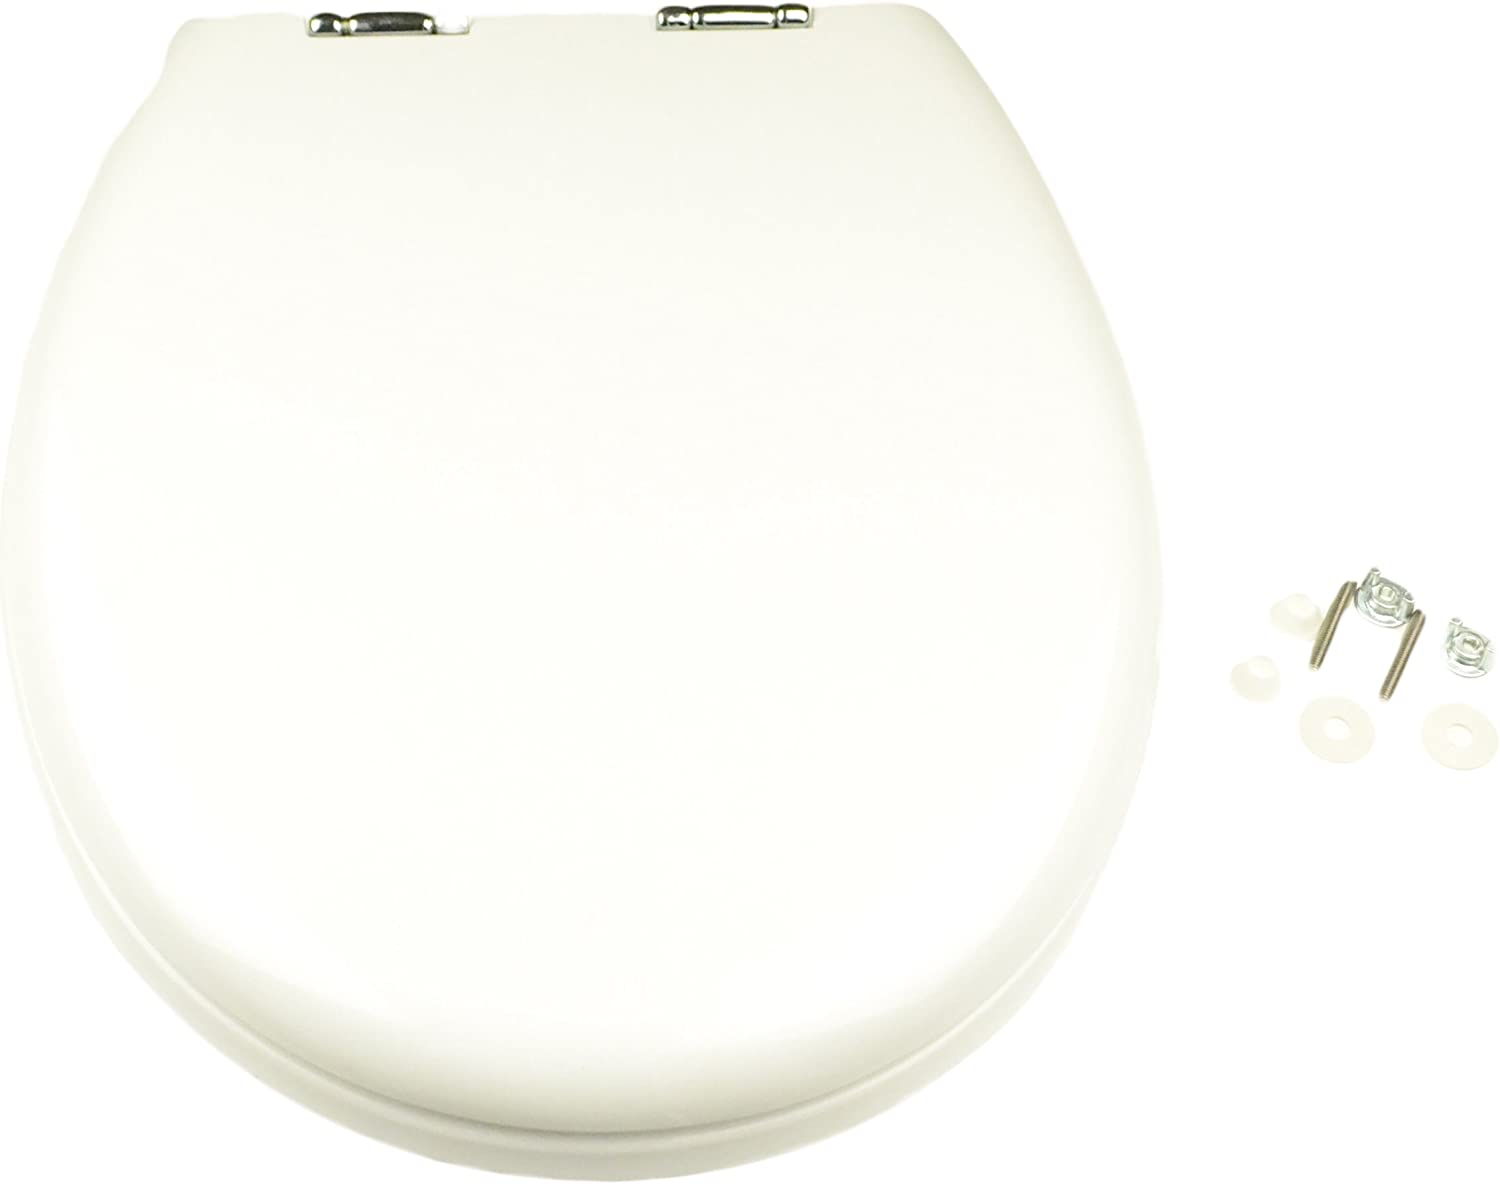 Thetford 42036 White Toilet Seat and Cover